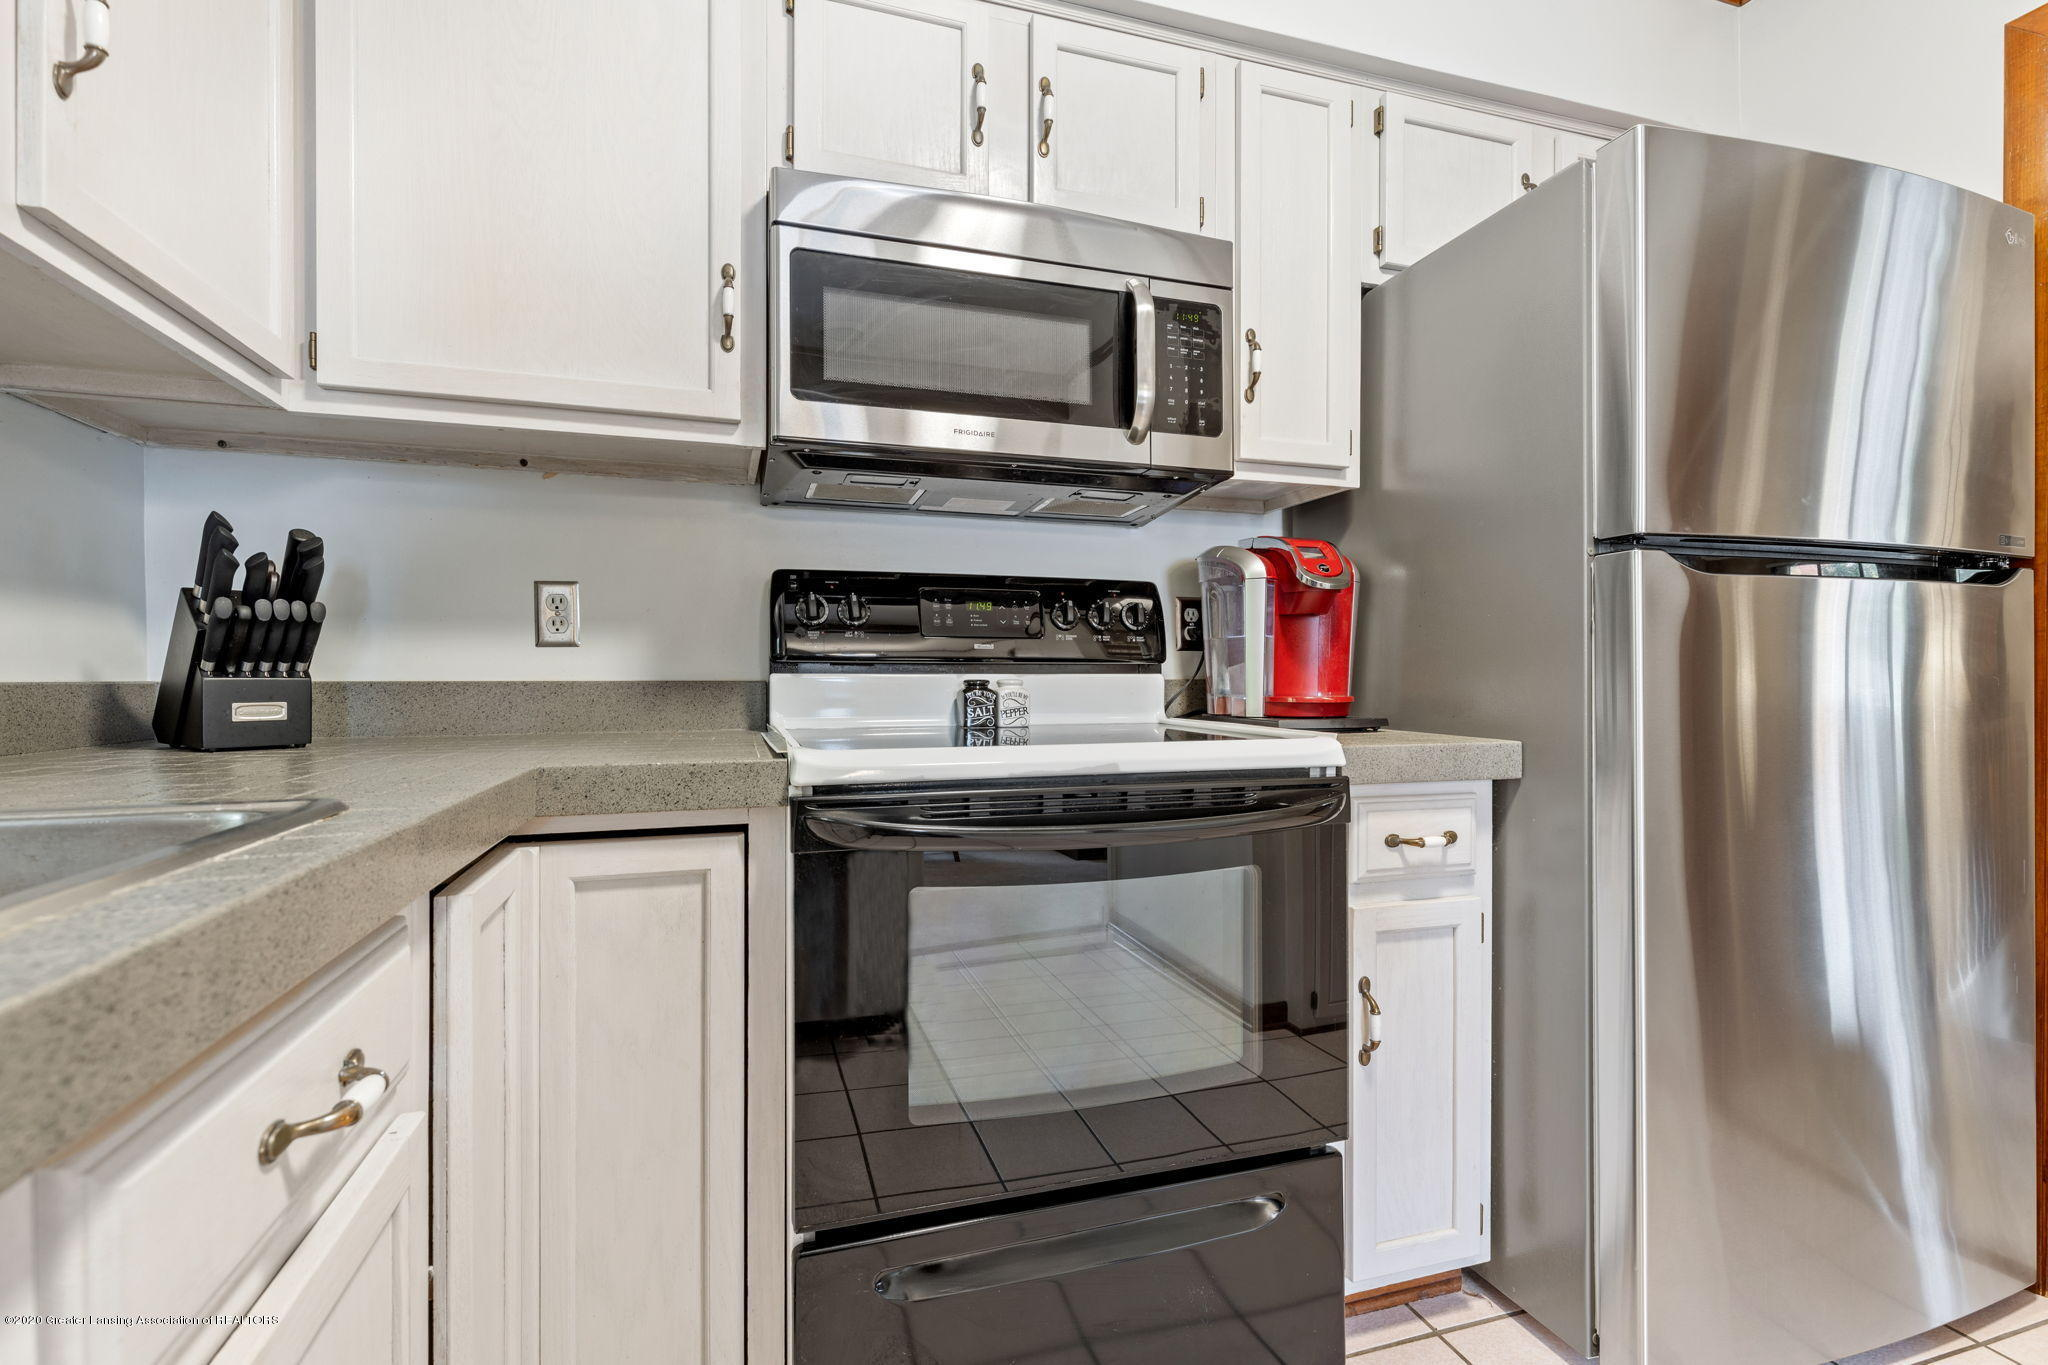 617 Green St - 28-web-or-mls-1P6A9501 - 12